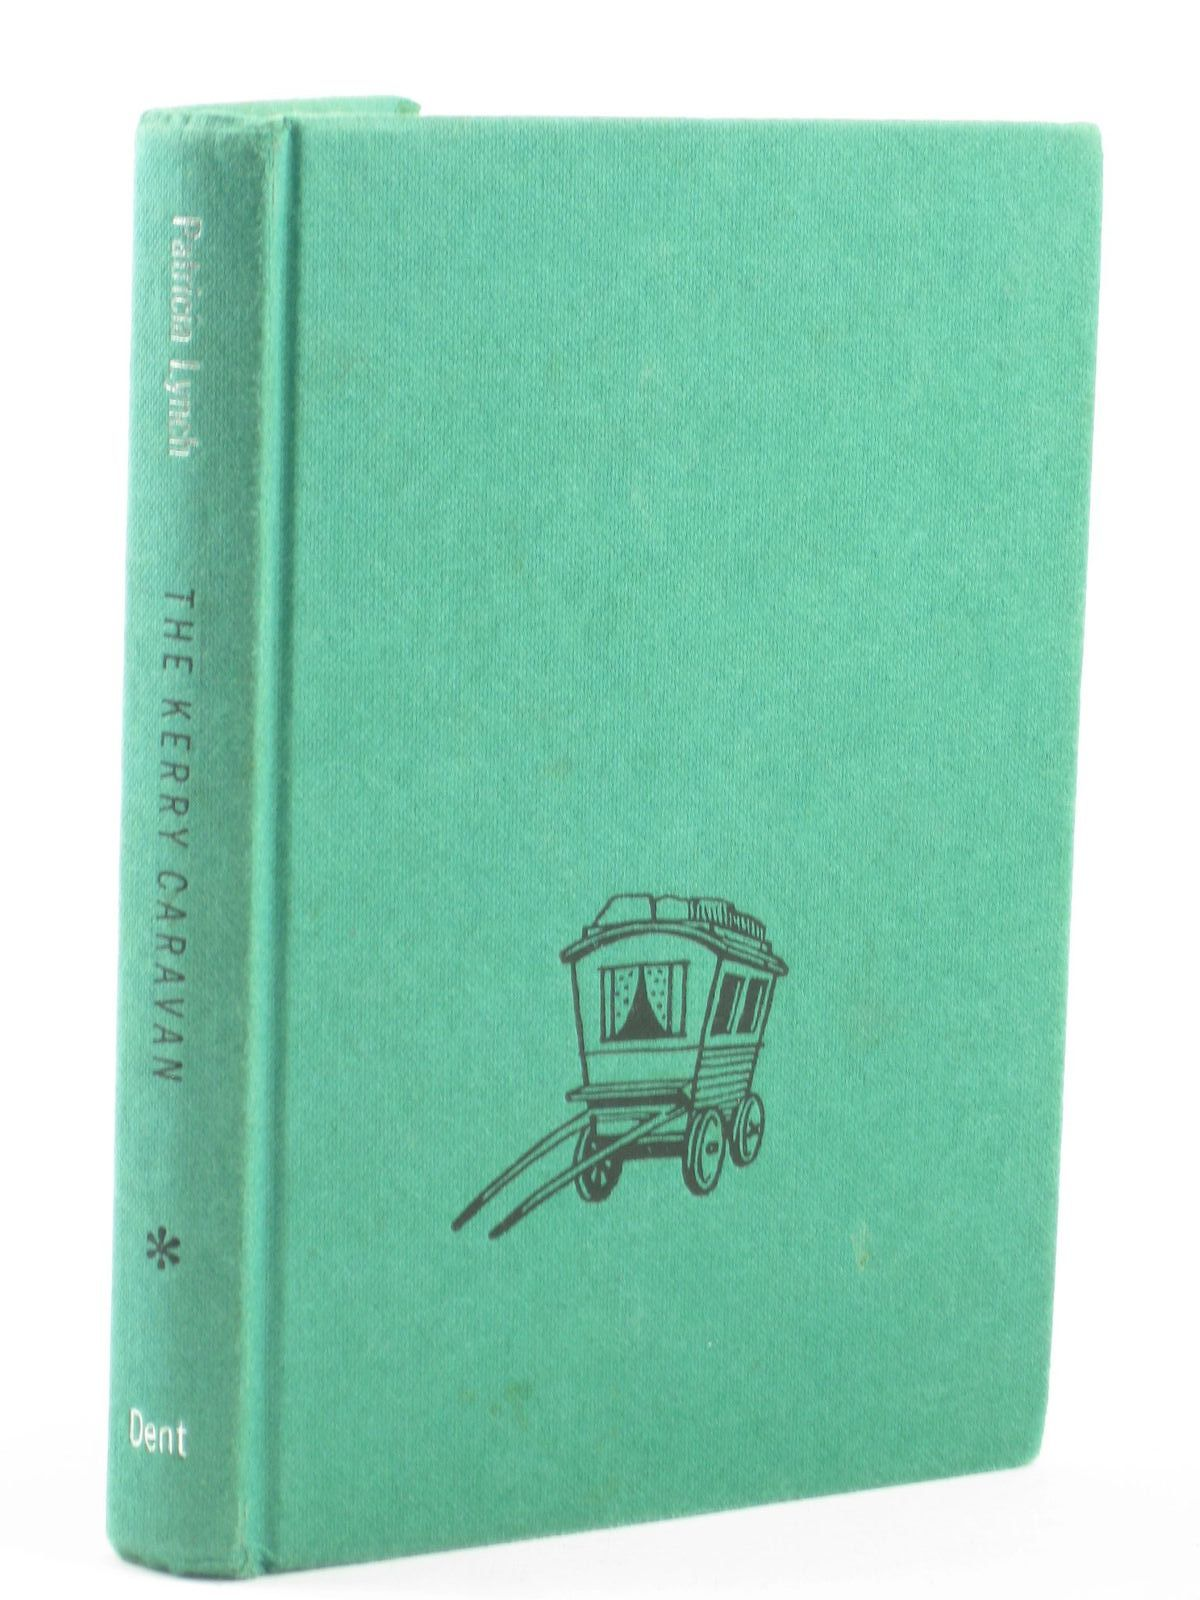 Photo of THE KERRY CARAVAN written by Lynch, Patricia illustrated by Hunt, James published by J.M. Dent & Sons Ltd. (STOCK CODE: 1401984)  for sale by Stella & Rose's Books